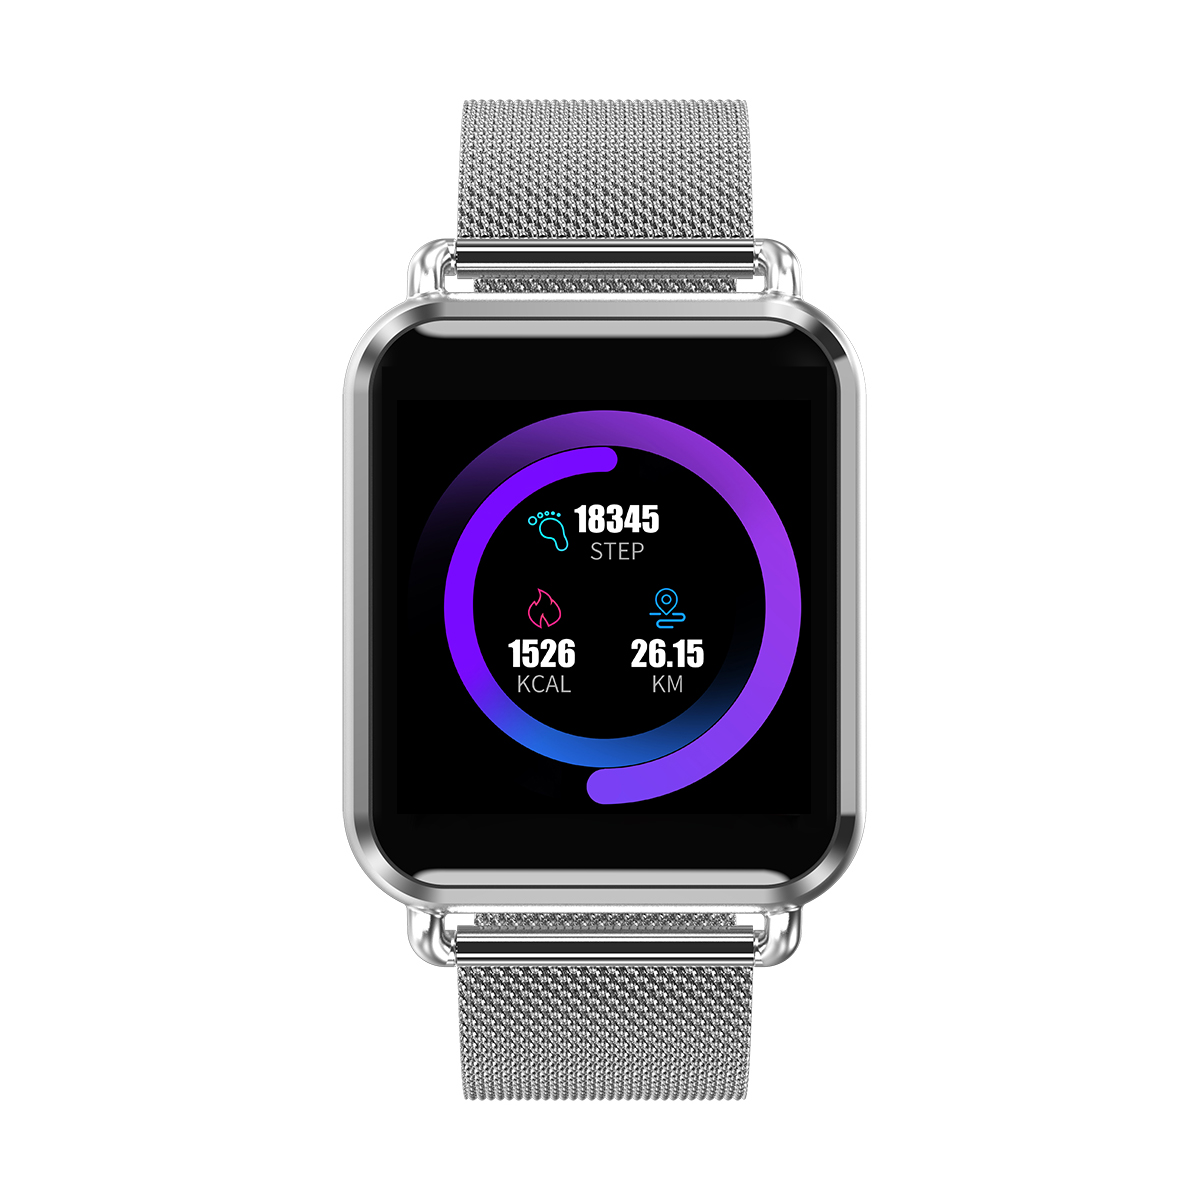 Updated Newwear Q3 Plus Smart Watch 1 3 Inch Men Women HR Blood Pressure Monitor Waterproof Sport Fitness Tracker Smartwatch in Smart Watches from Consumer Electronics